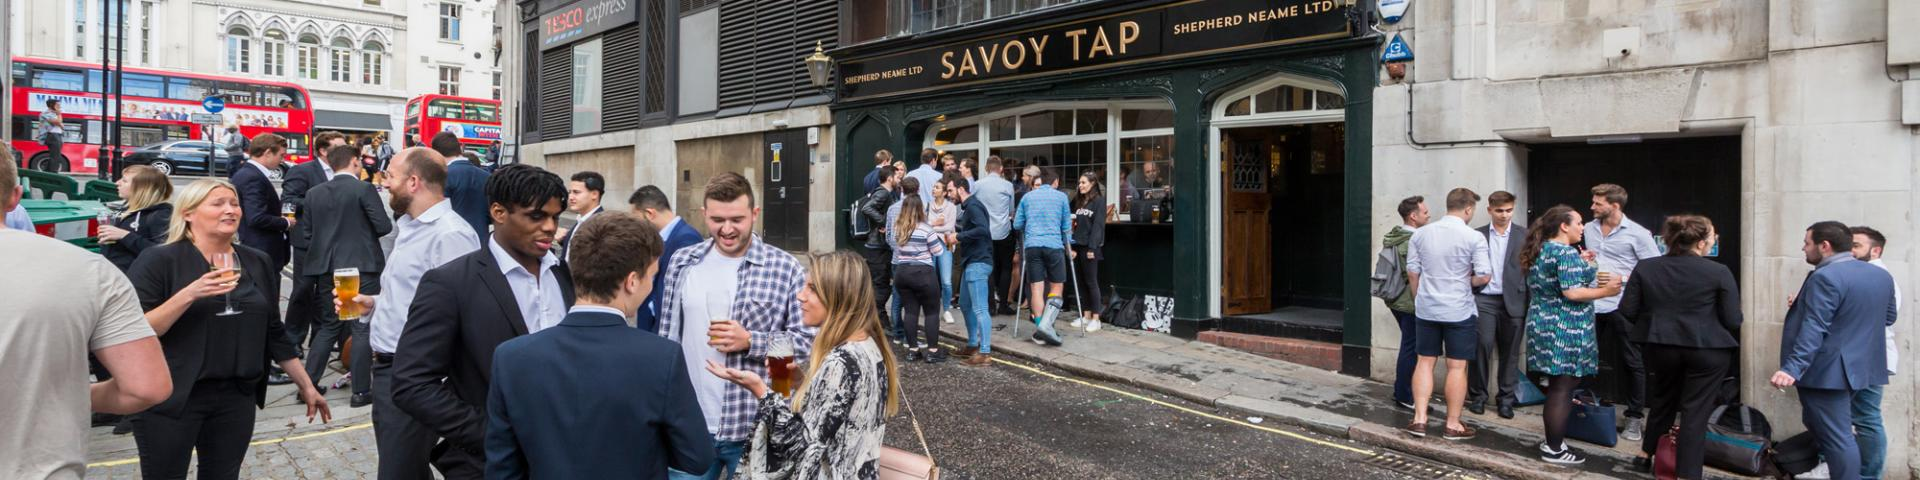 Savoy Tap, The Strand, London